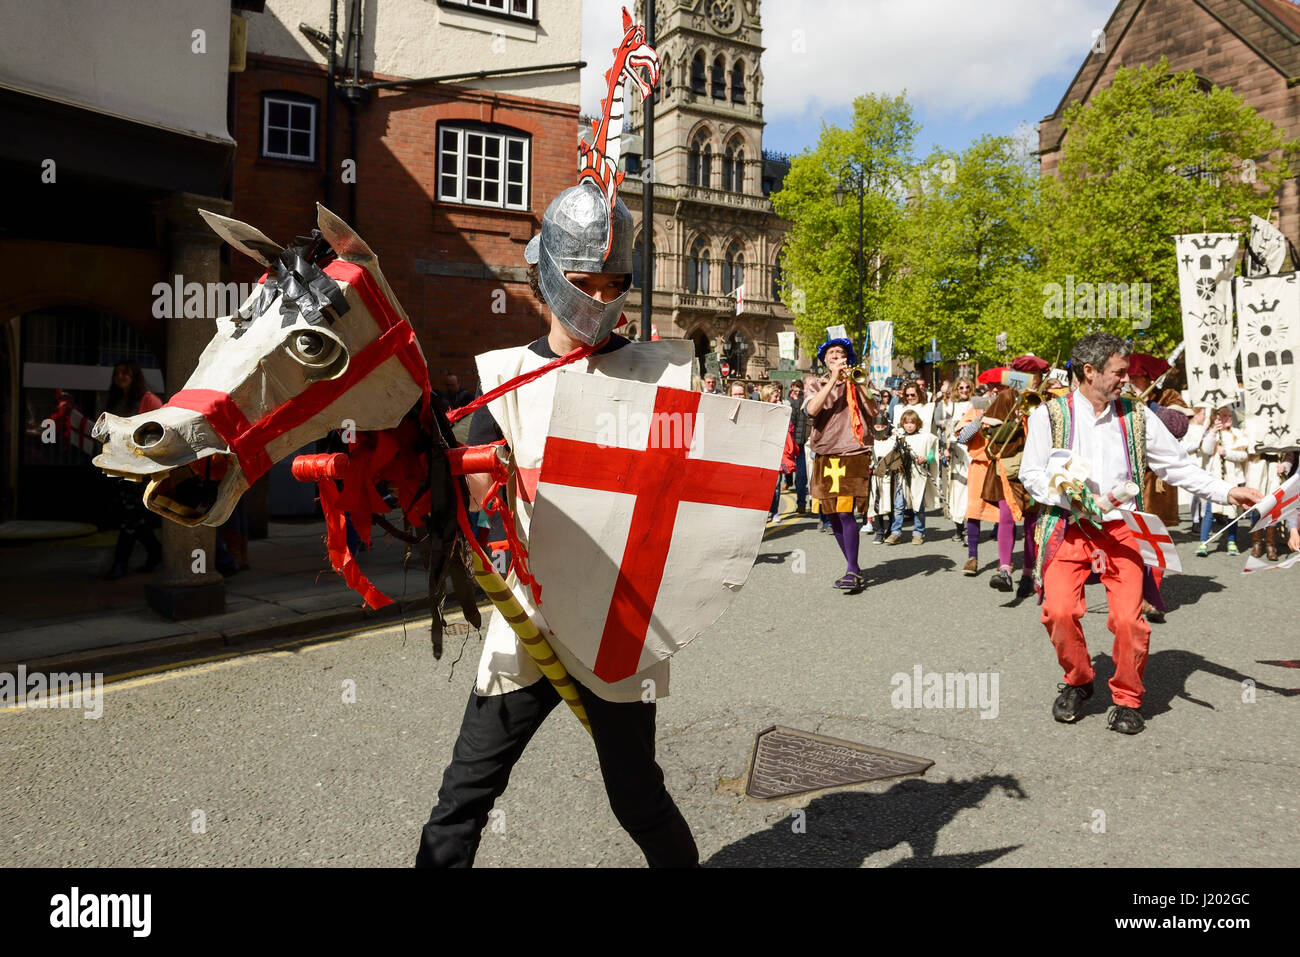 Chester, UK. 23rd April 2017. St George rides his horse through the streets of Chester as part of the St George's - Stock Image